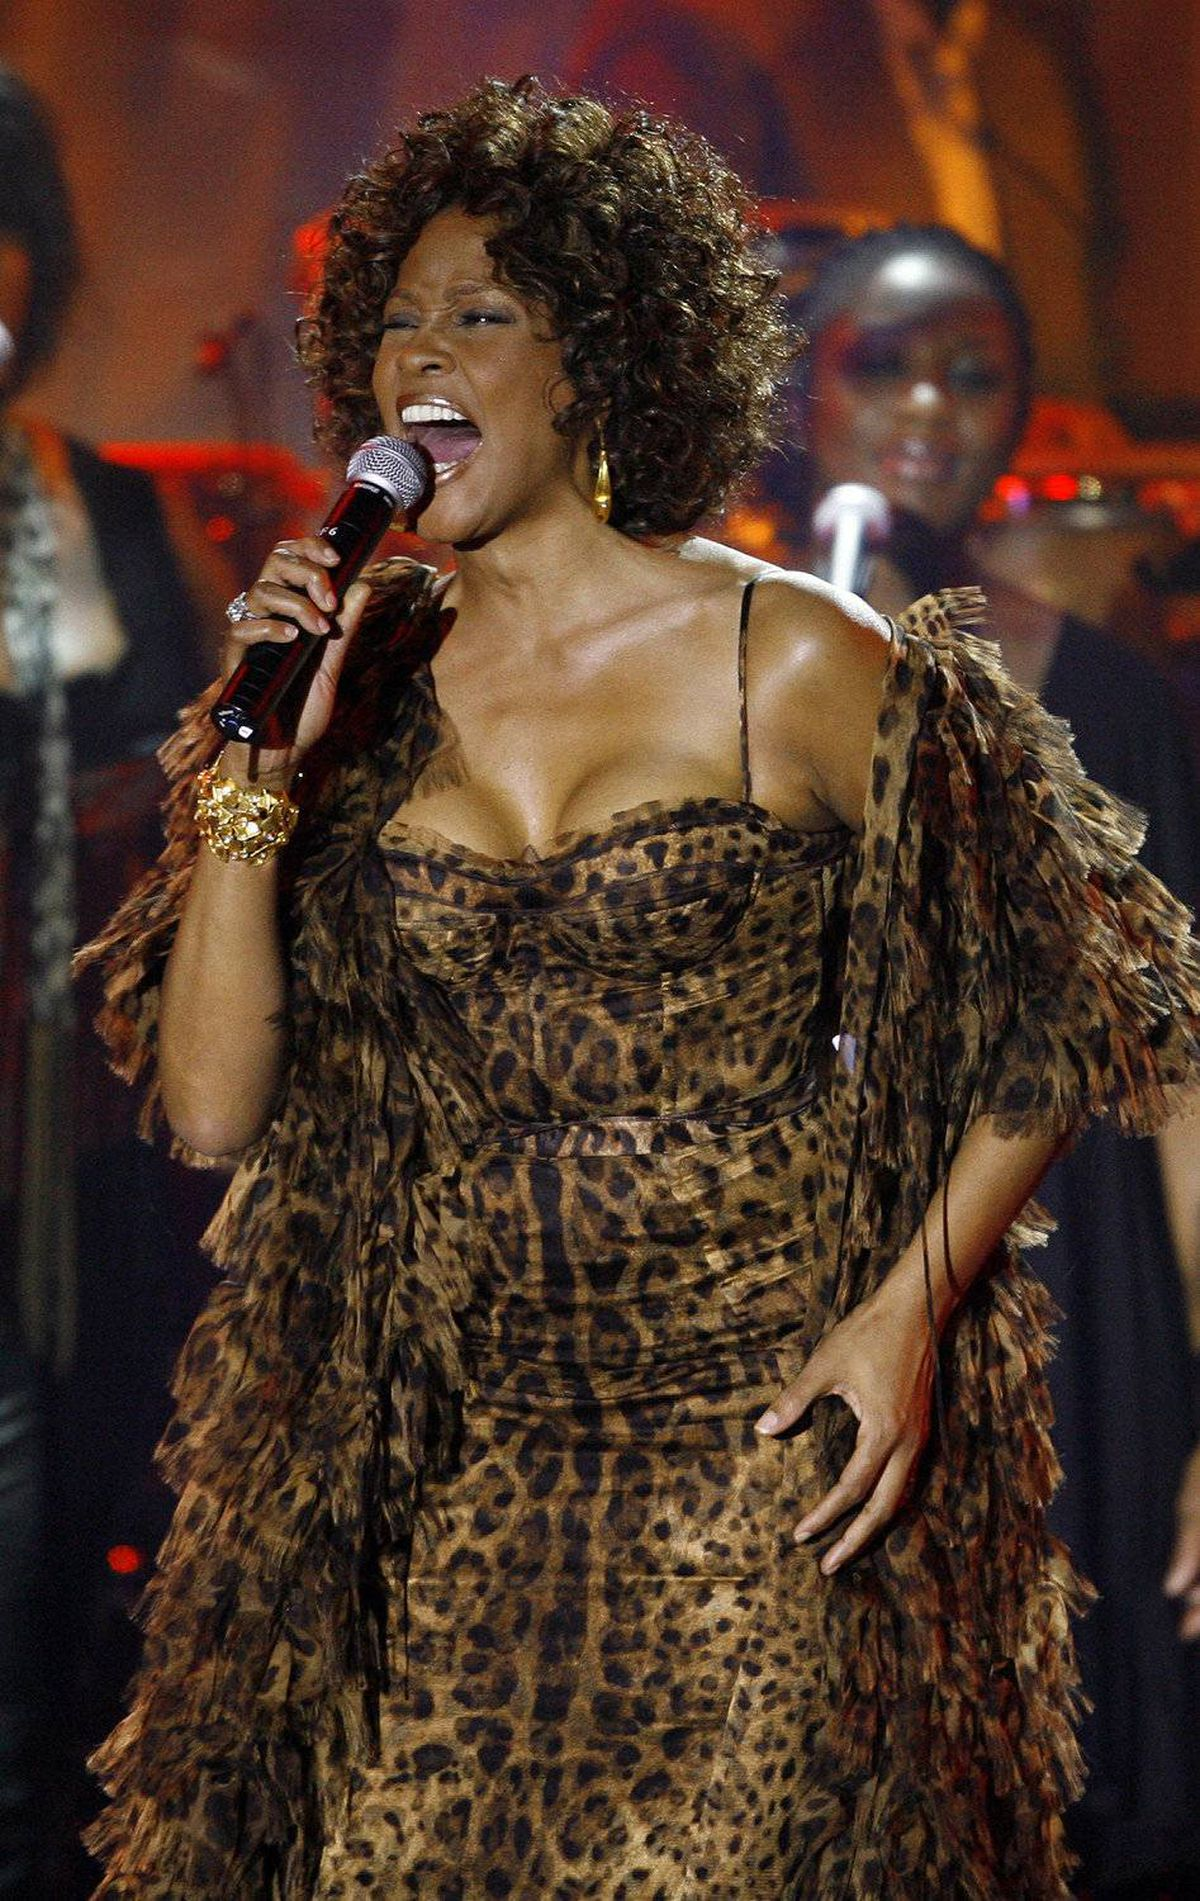 Ms. Houston performs at the 2009 Grammy Salute to Industry Icons event to honour her mentor, Clive Davis, in Feburary, 2009.